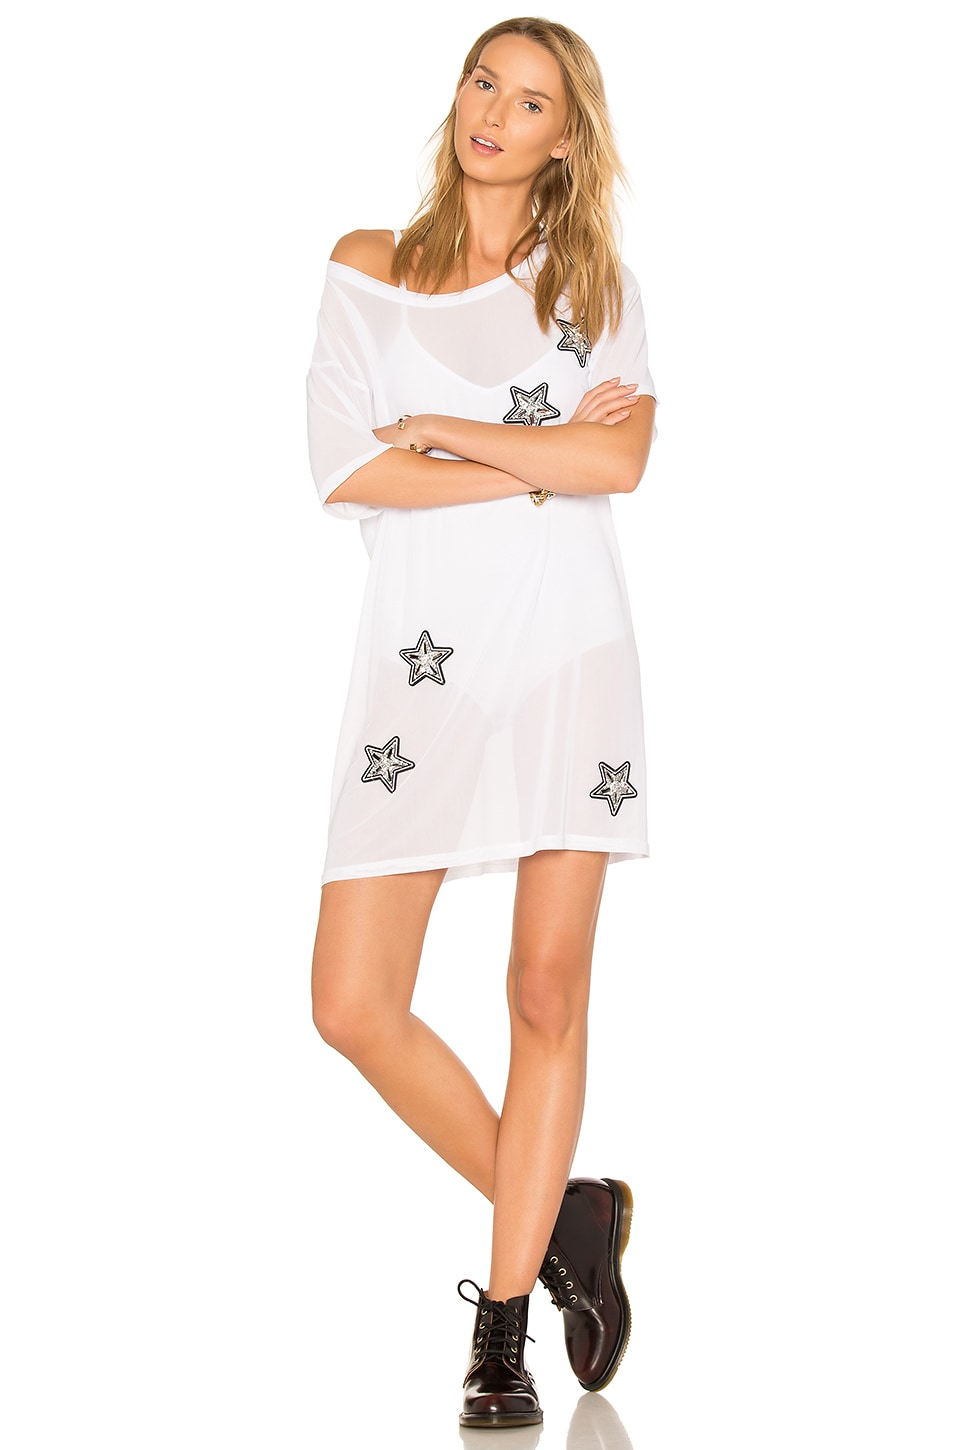 MINKPINK X REVOLVE Stars & Mesh Tee Dress in White